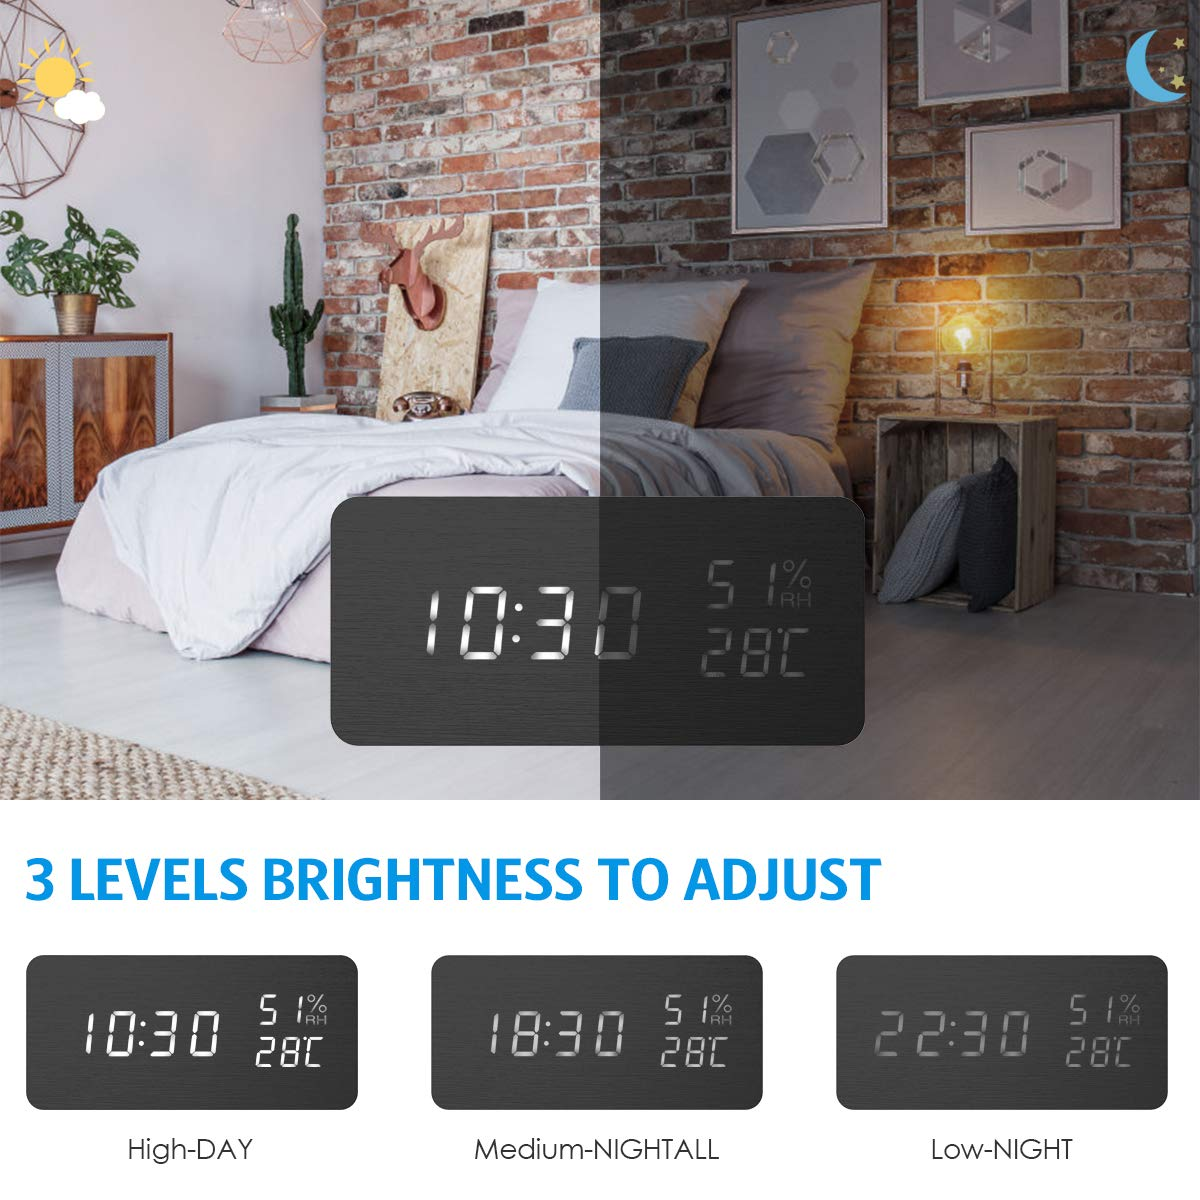 AMIR Alarm Clock, Wooden Digital Multi-Function Modern Cube LED Light, Smart Voice-Activated with 3 Alarm Sounds, Display Date Temperature & Humidity for Home, Kitchen, Bedroom (Black) by AMIR (Image #3)